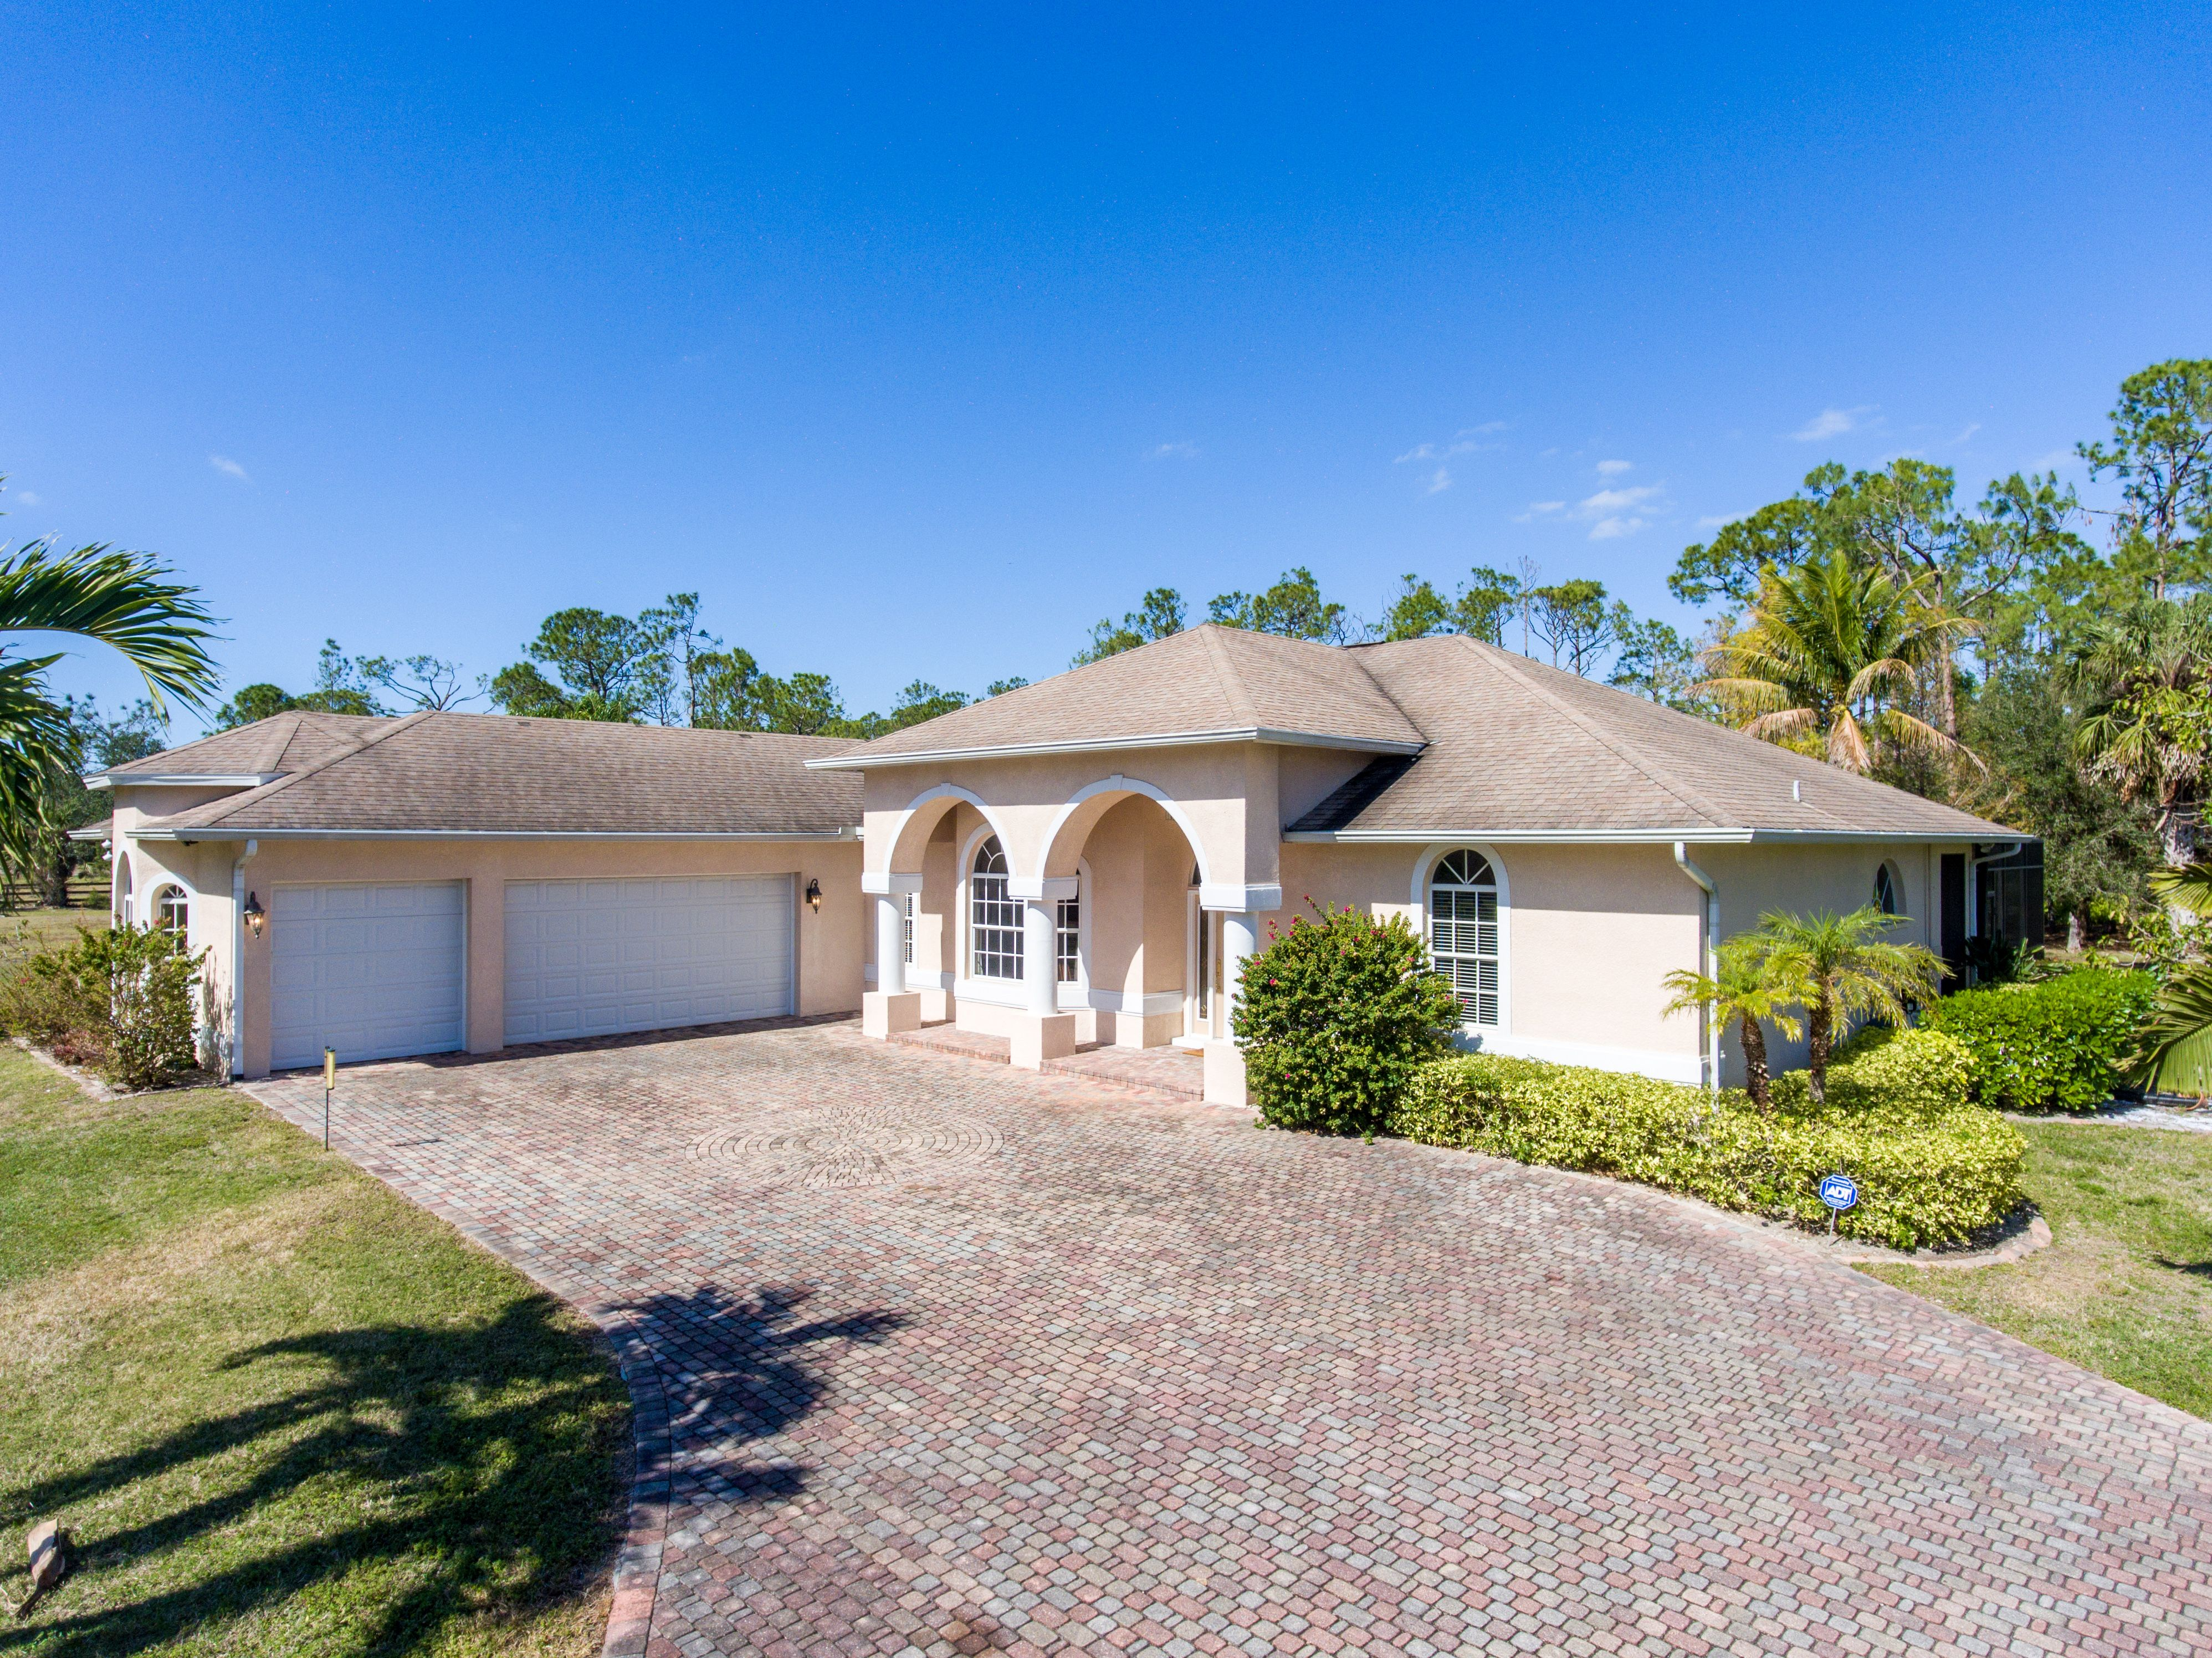 6521 livingston woods ln naples floffered by sheree